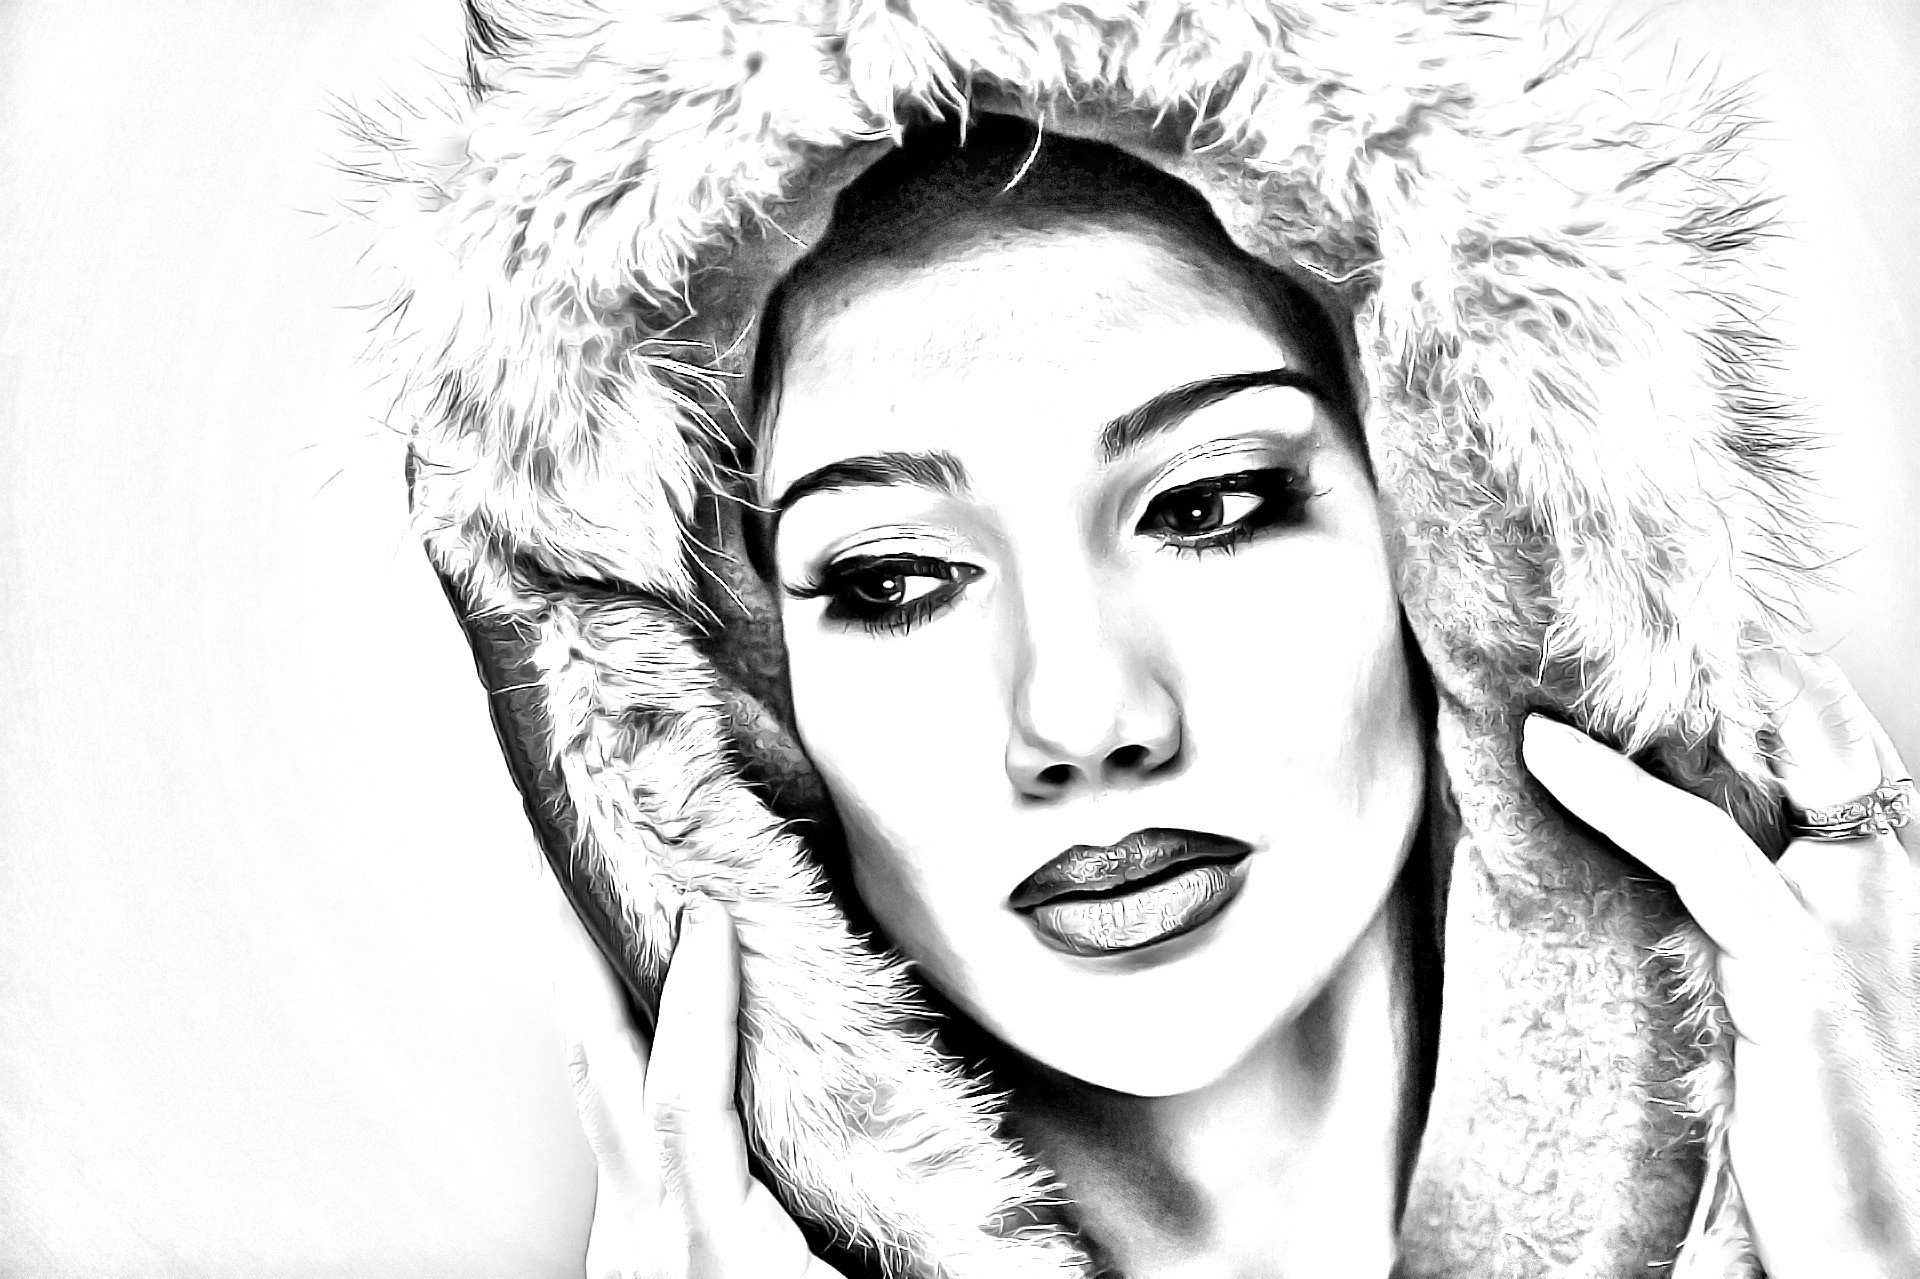 Photoshop Photo Line Art Effect : Pencil drawing effect photoshop action by shinypixel